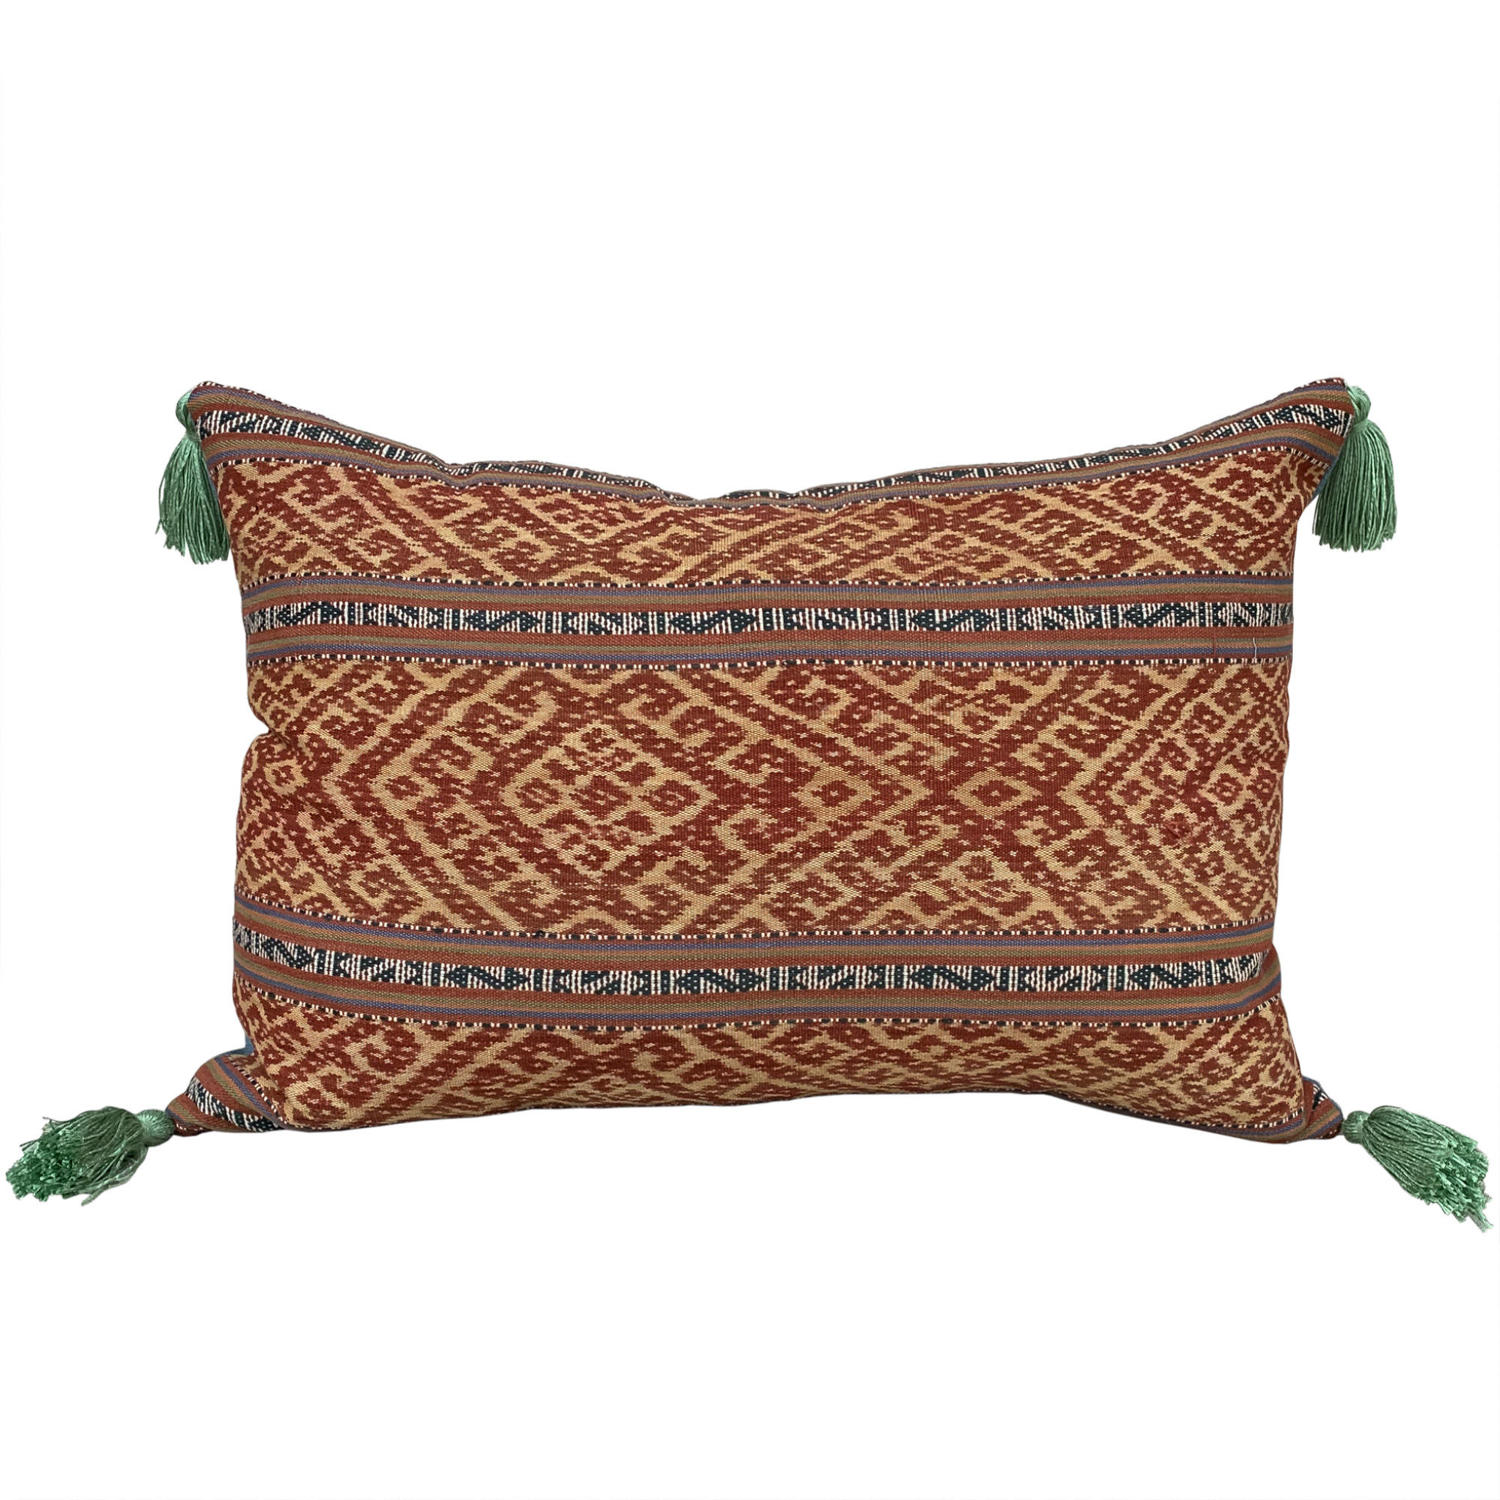 Timor ikat cushion with green tassels